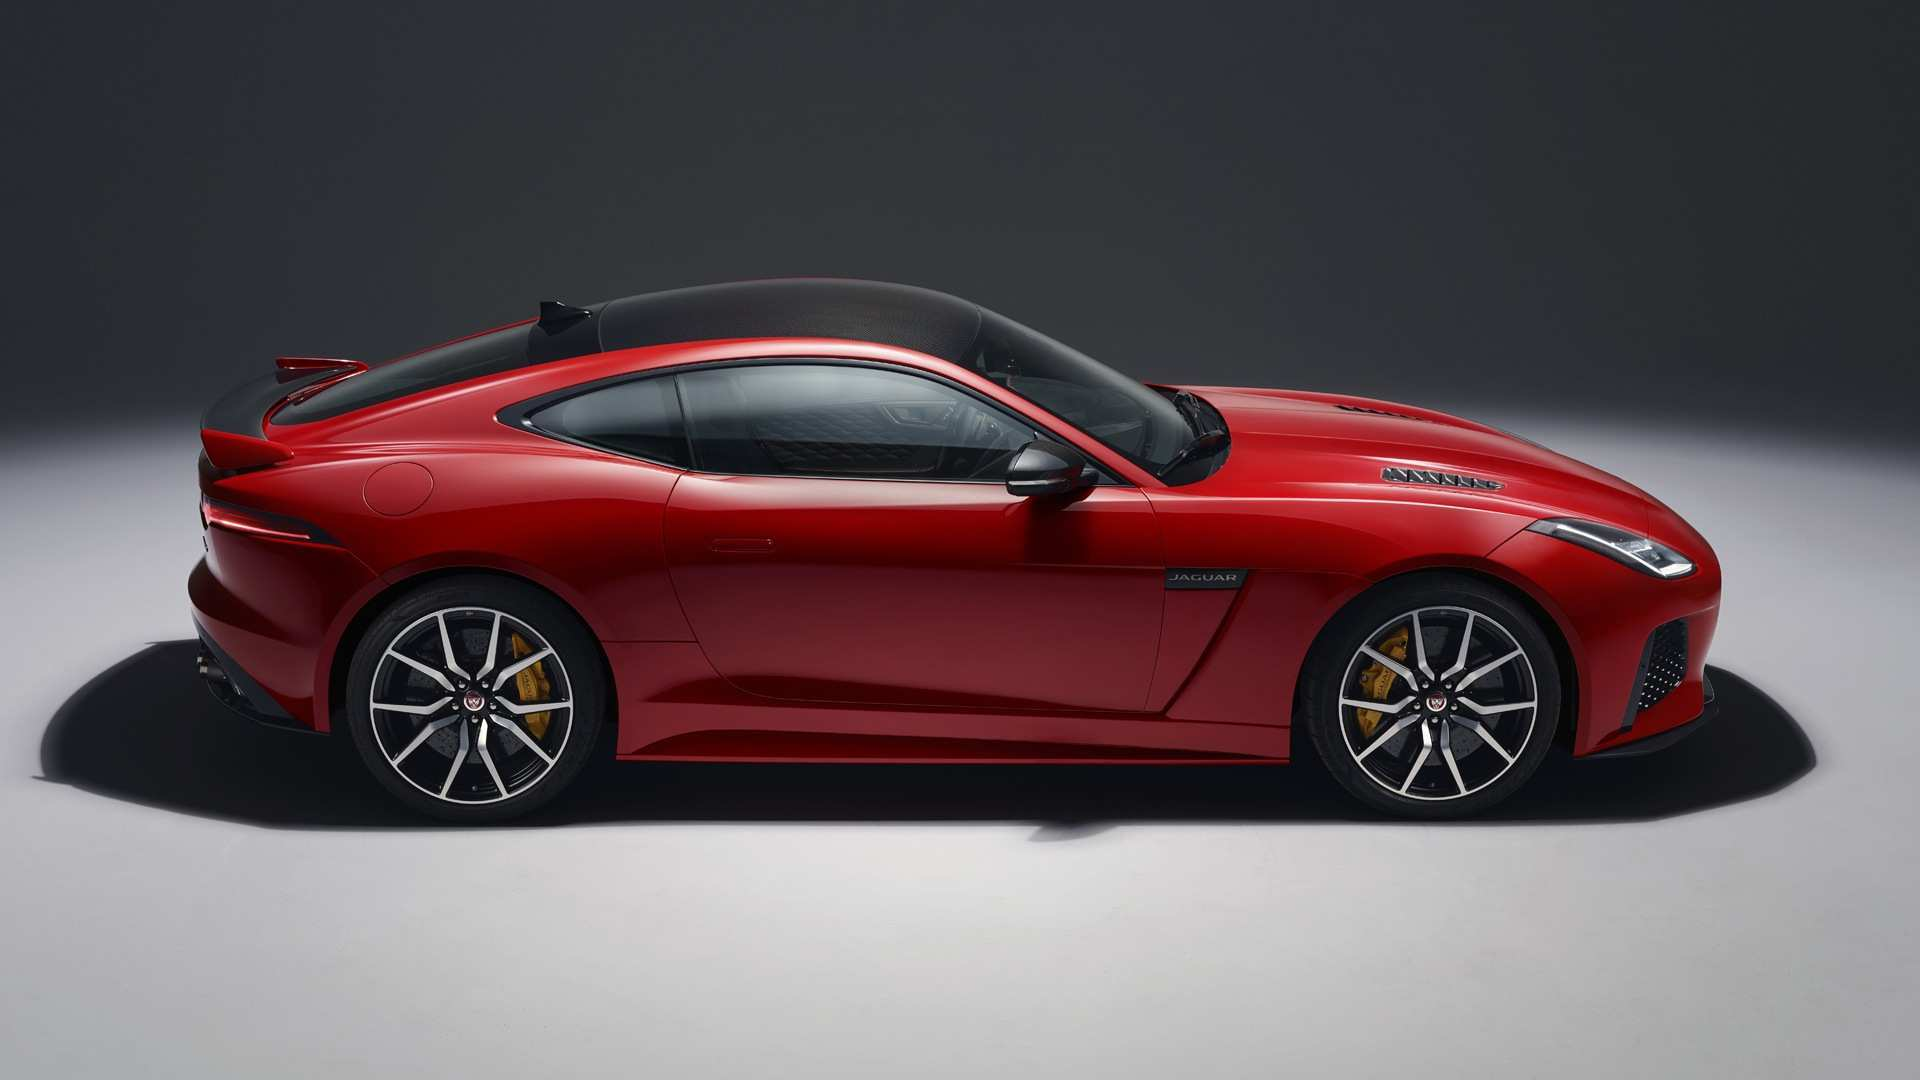 63 New The Jaguar F Type Facelift 2019 New Engine Exterior and Interior with The Jaguar F Type Facelift 2019 New Engine